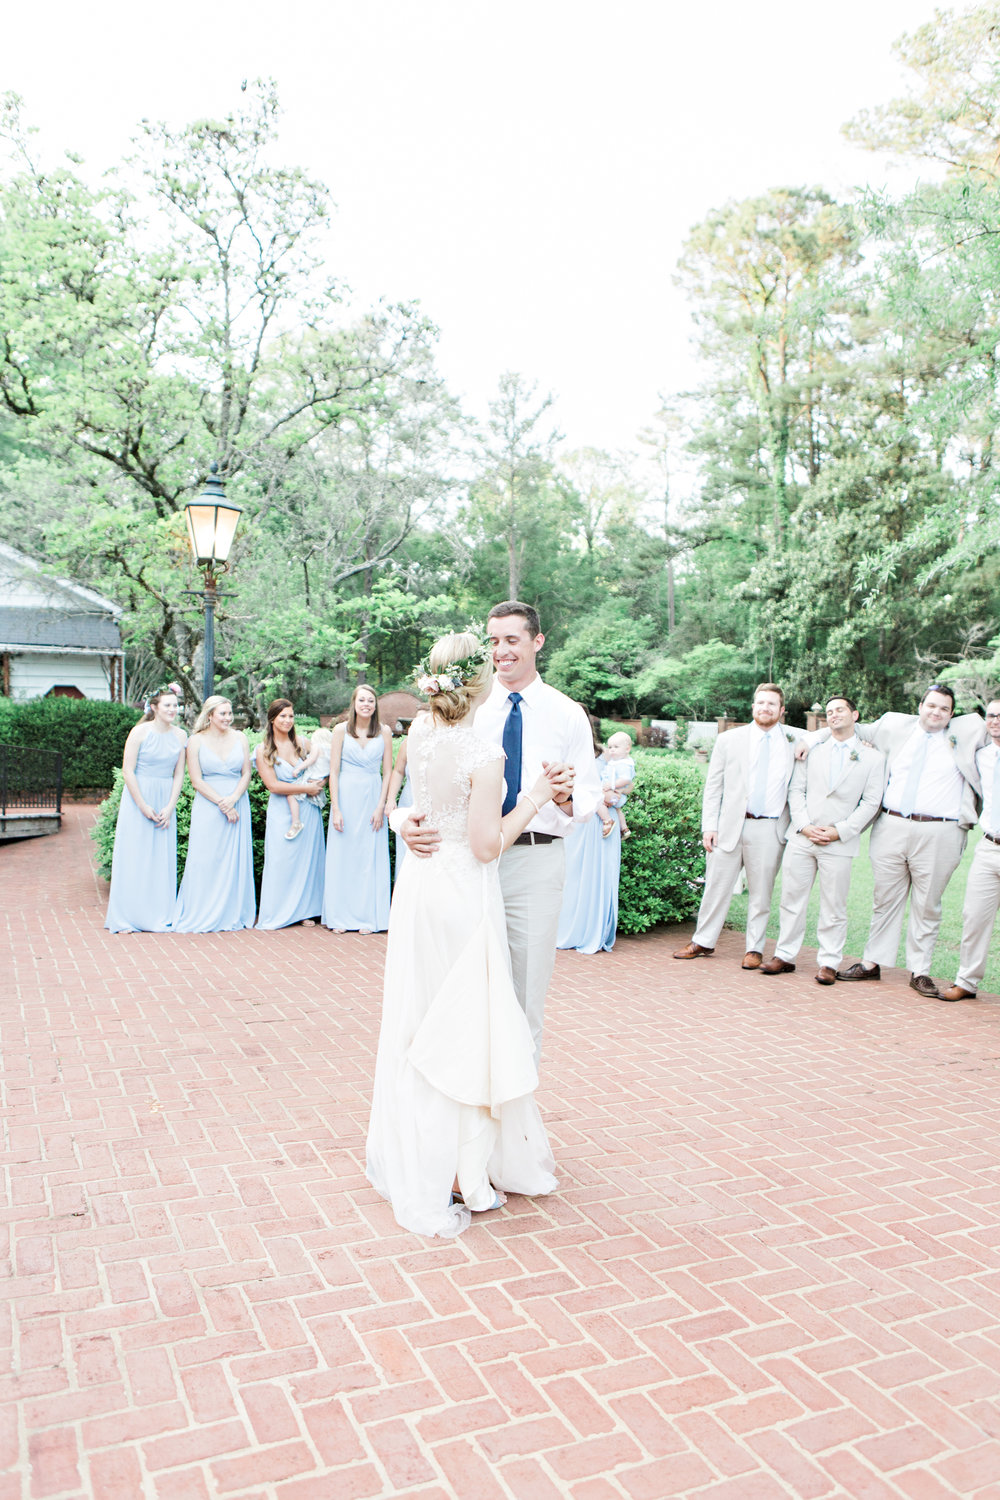 Matty-Drollette-Photography-Alabama-Weddings-Sara and Logan-149.jpg